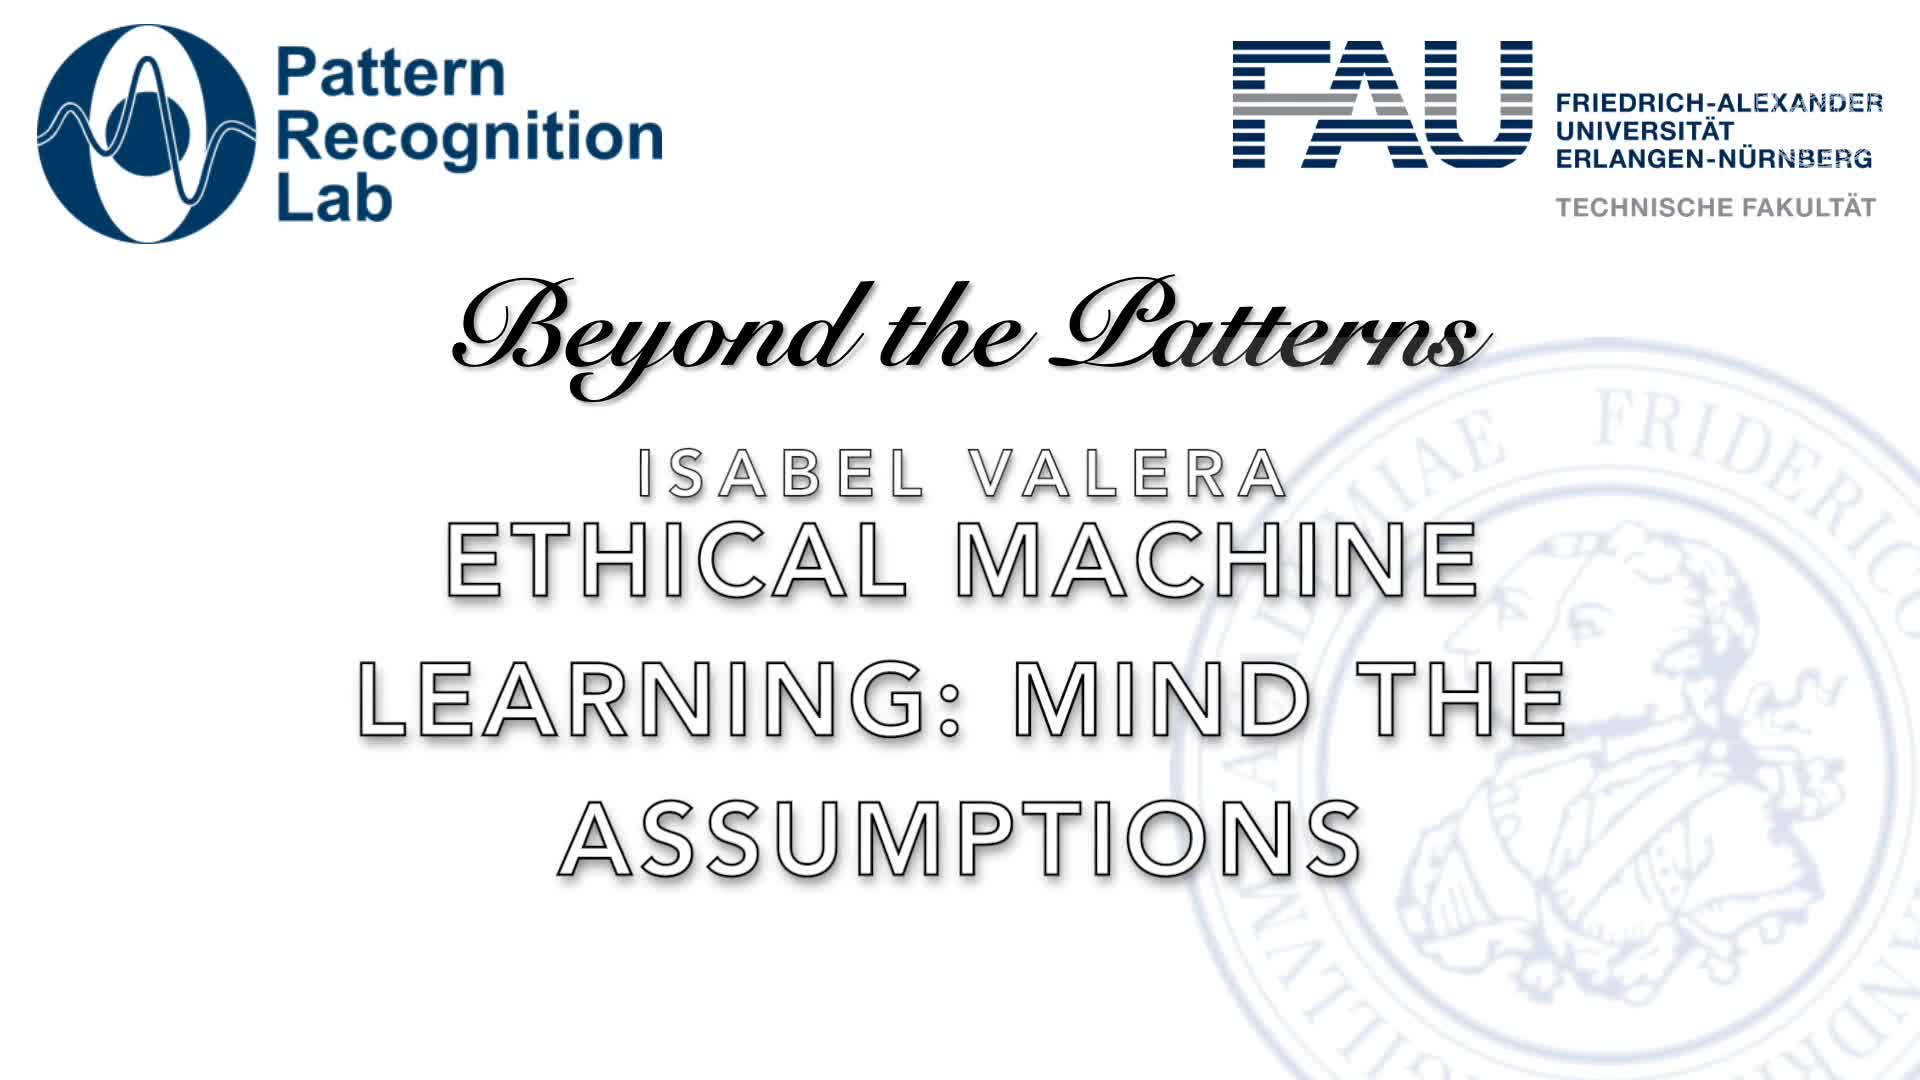 Beyond the Patterns - Isabel Valera - Ethical Machine Learning: Mind the Assumptions! preview image